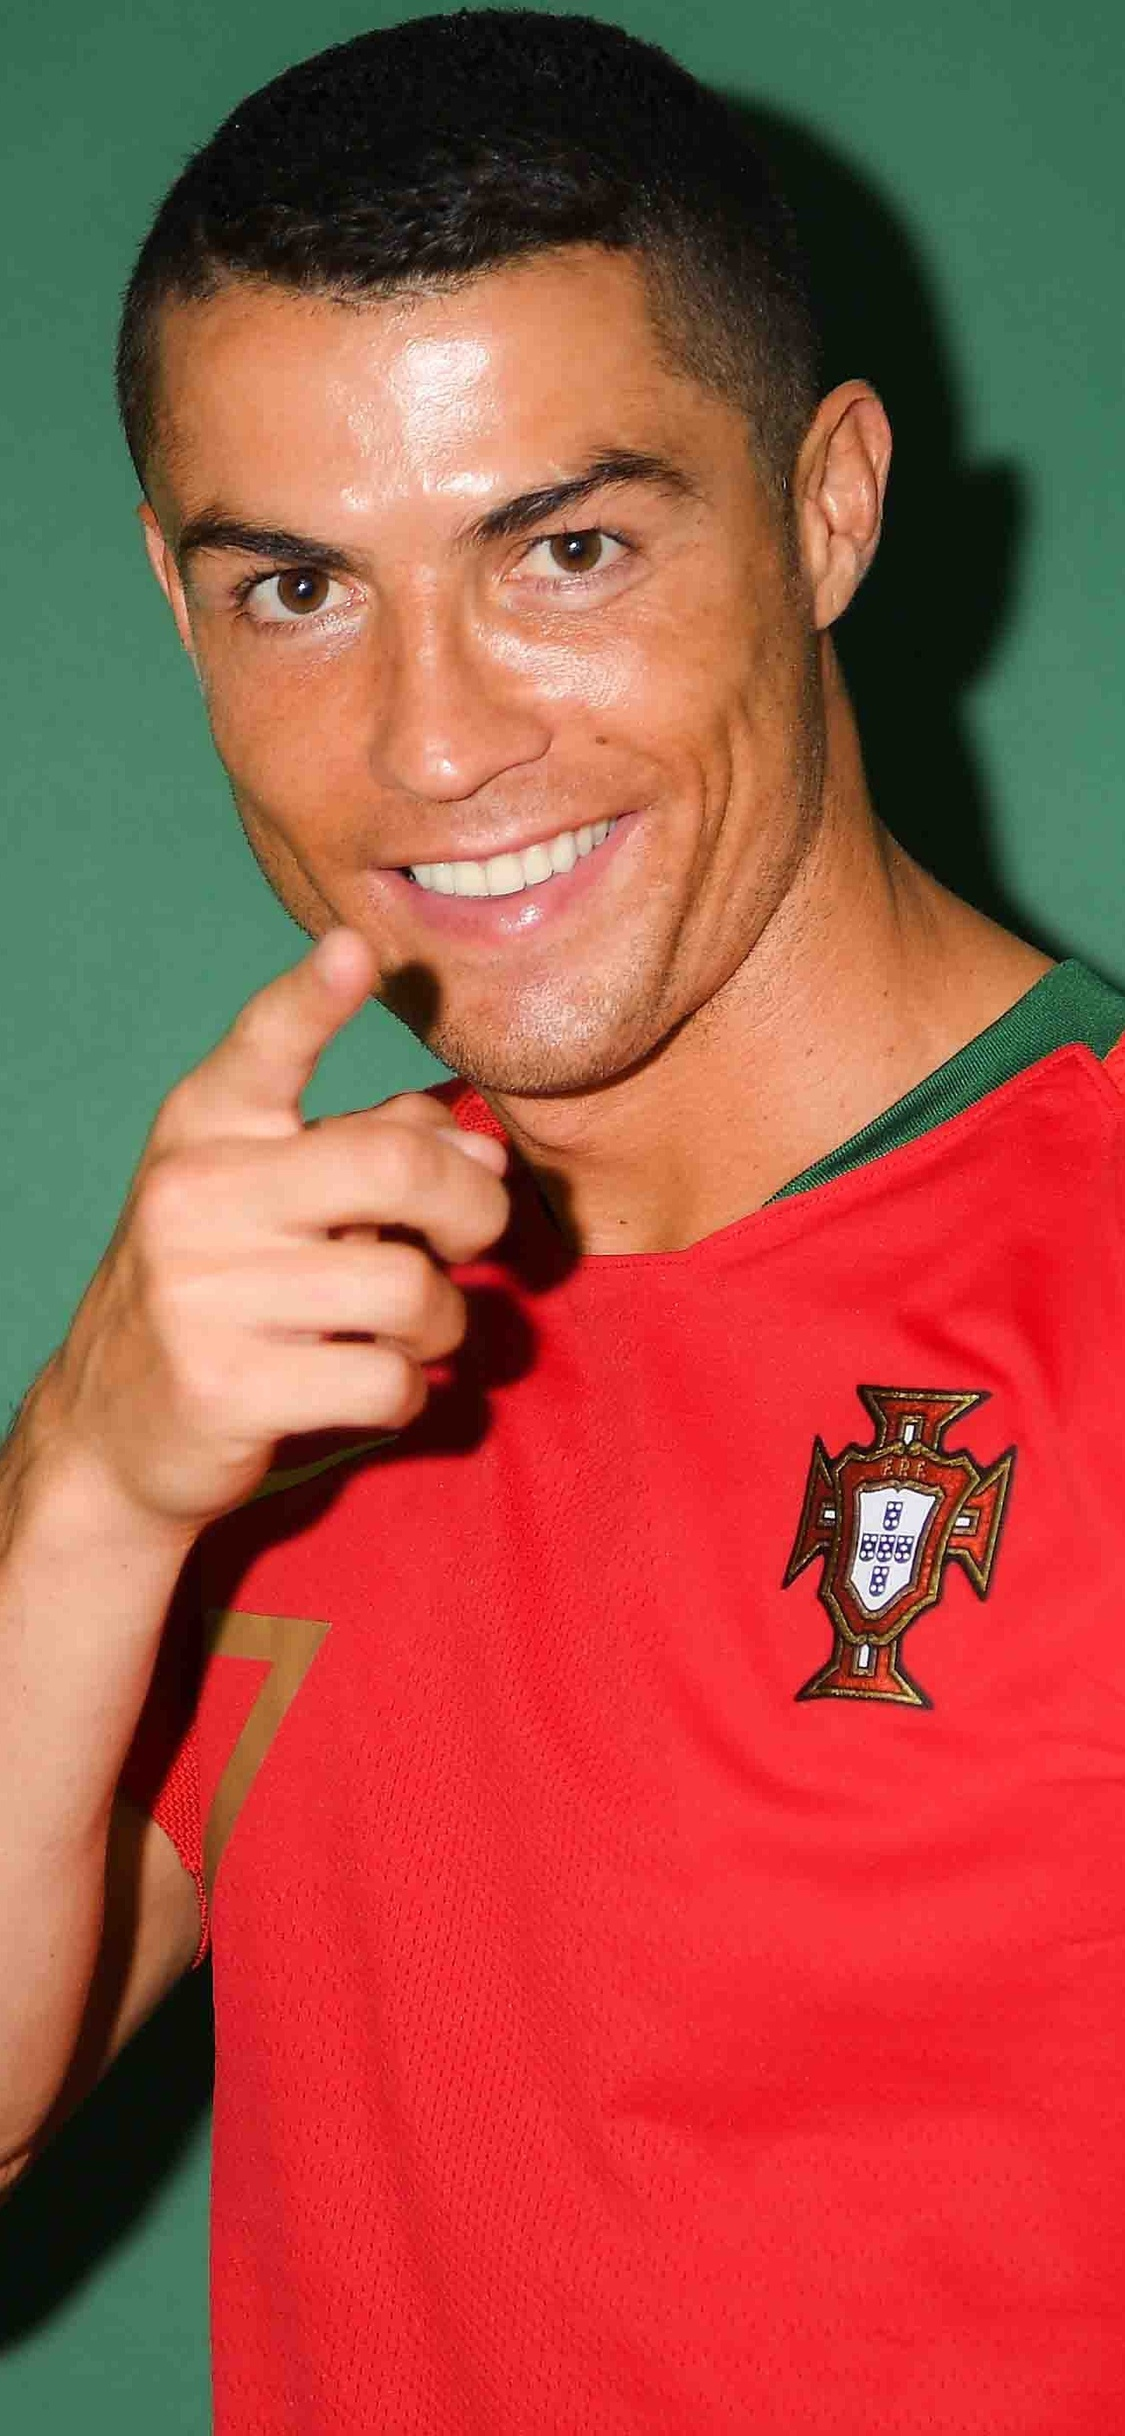 1125x2436 Cristiano Ronaldo Portugal Fifa World Cup 2018 Iphone Xs Iphone 10 Iphone X Hd 4k Wallpapers Images Backgrounds Photos And Pictures